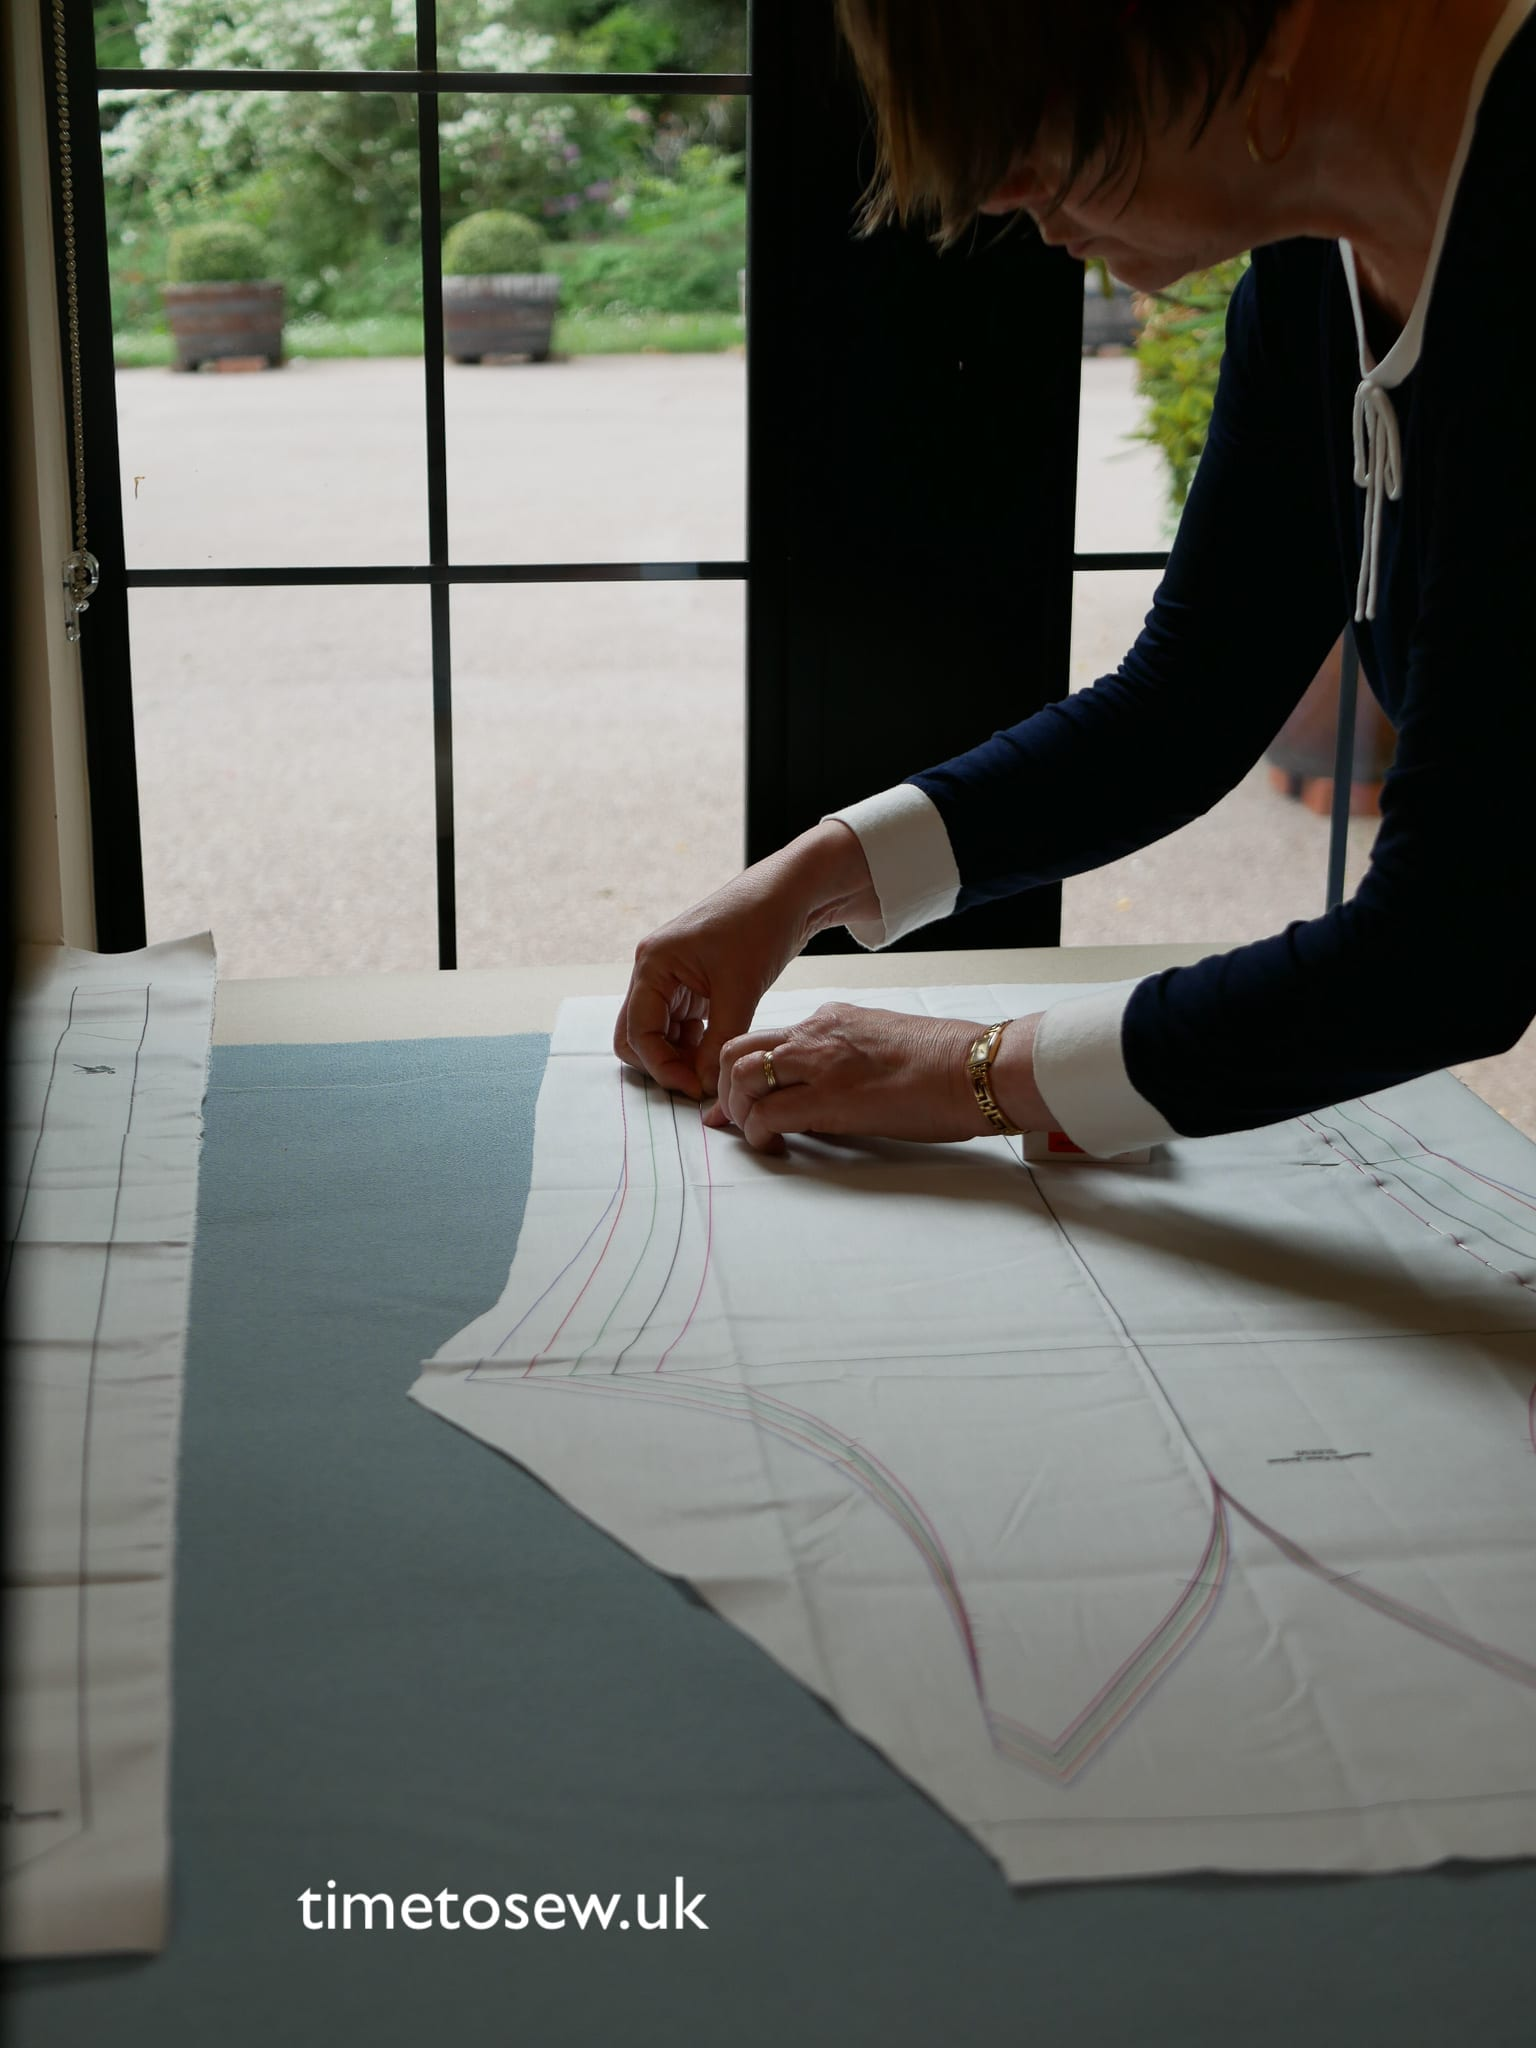 Pinning and thread tracing